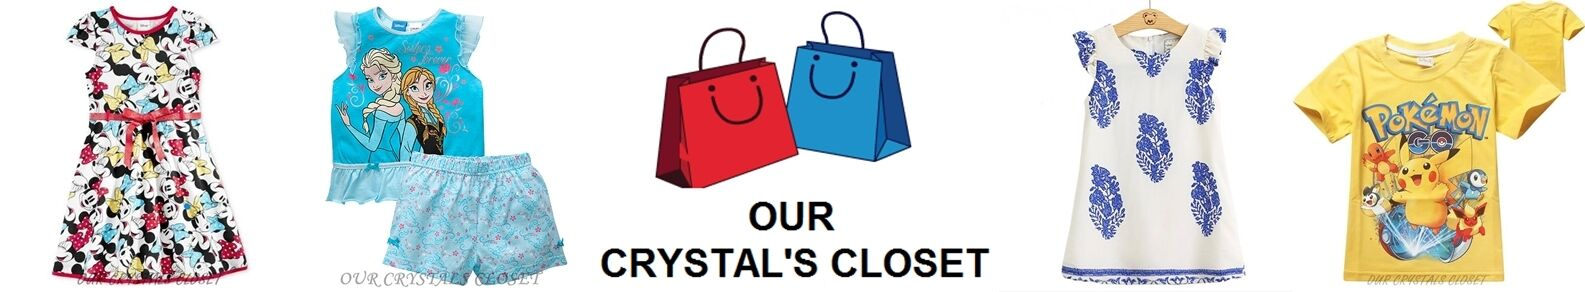 Our Crystal's Closet